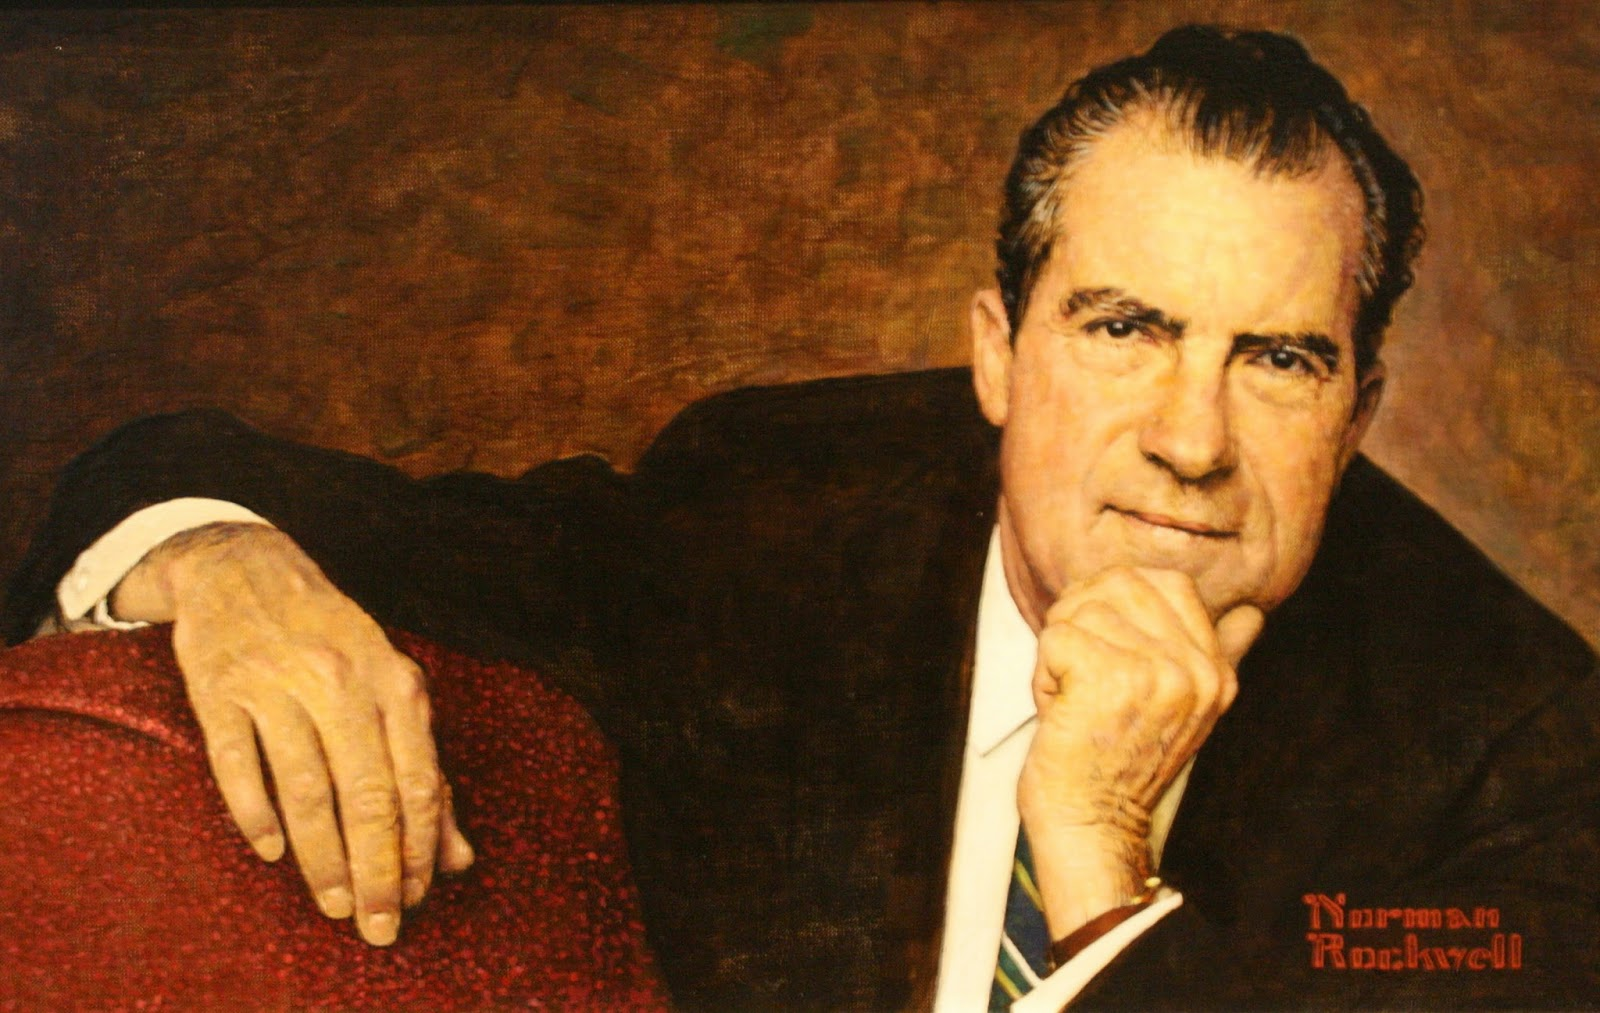 Norman Rockwell paints Nixon